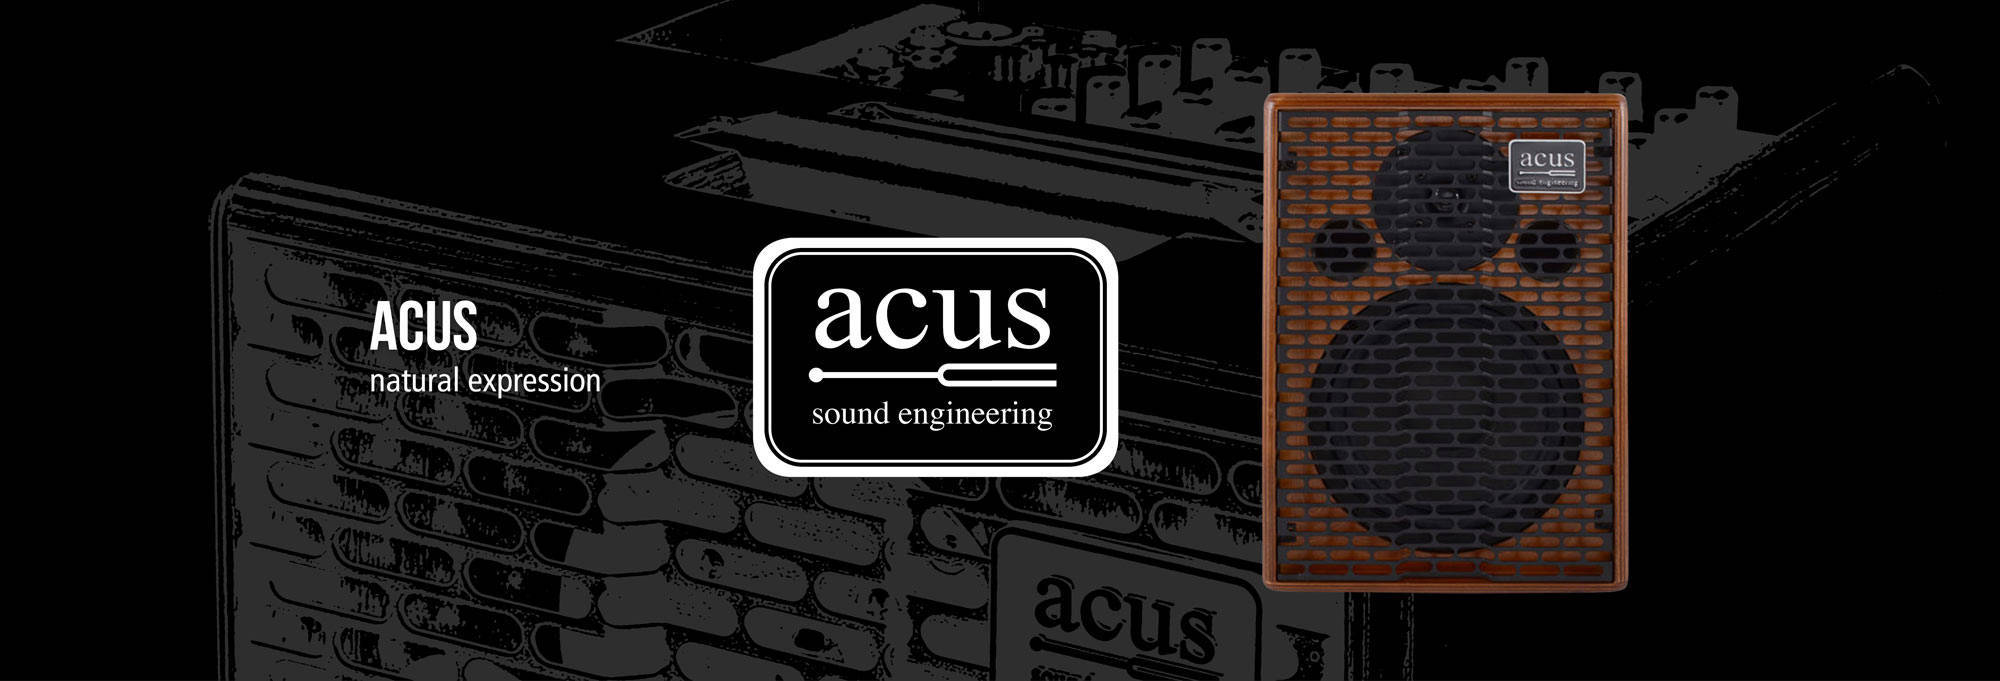 Acus - natural expression